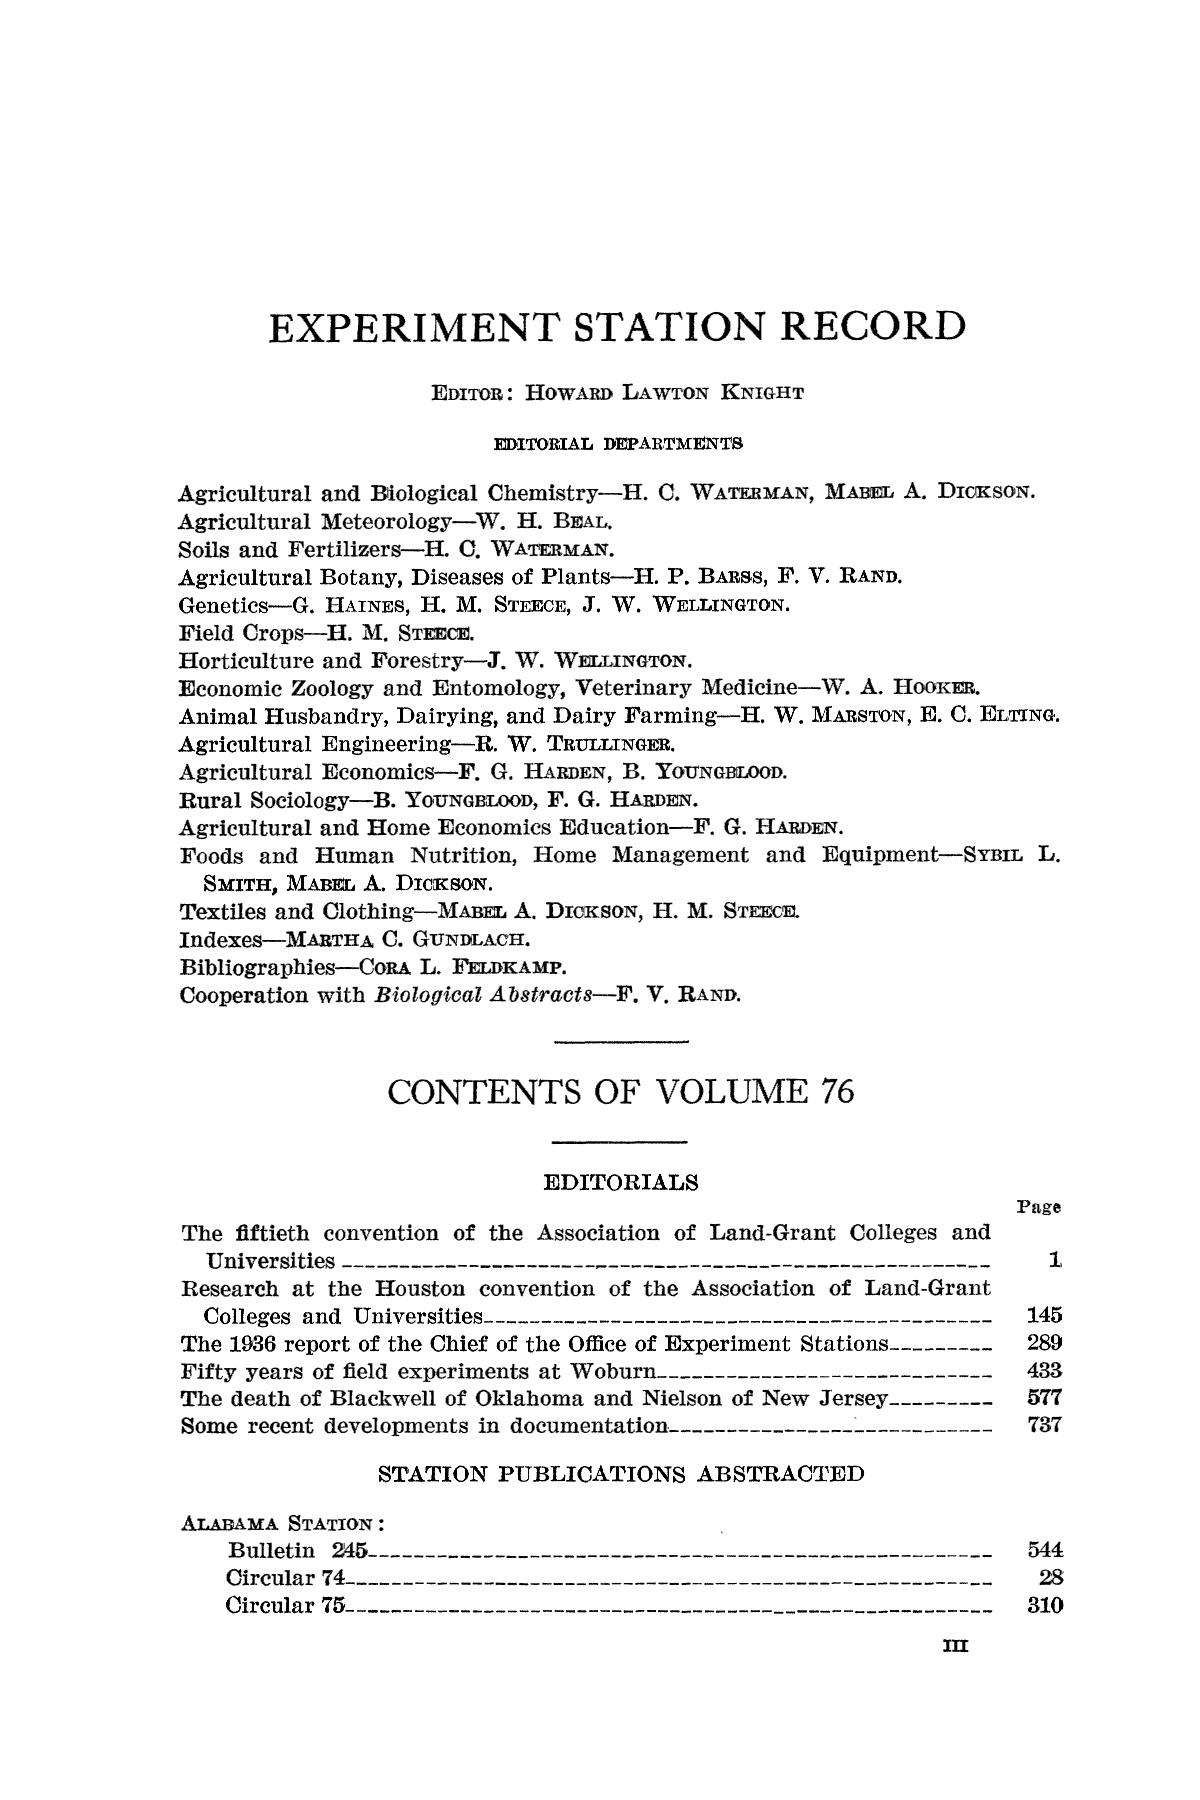 Experiment Station Record, Volume 76, January-June, 1937                                                                                                      III